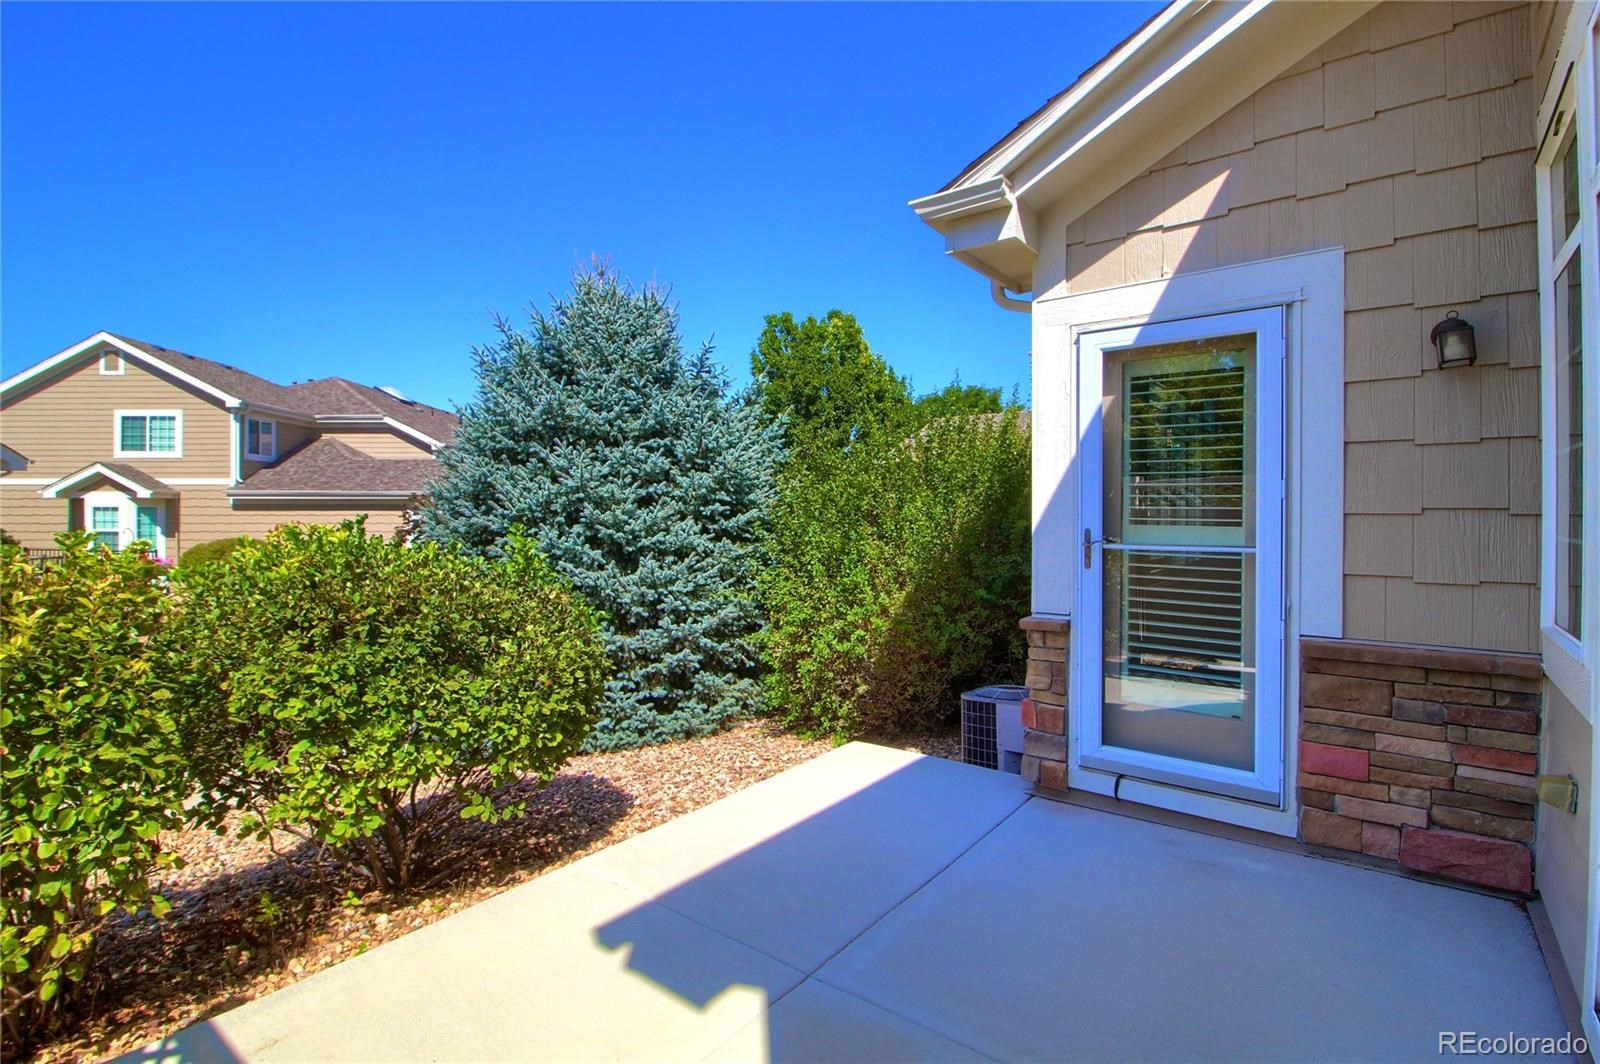 MLS# 8597792 - 38 - 13787 Stone Circle #101, Broomfield, CO 80023